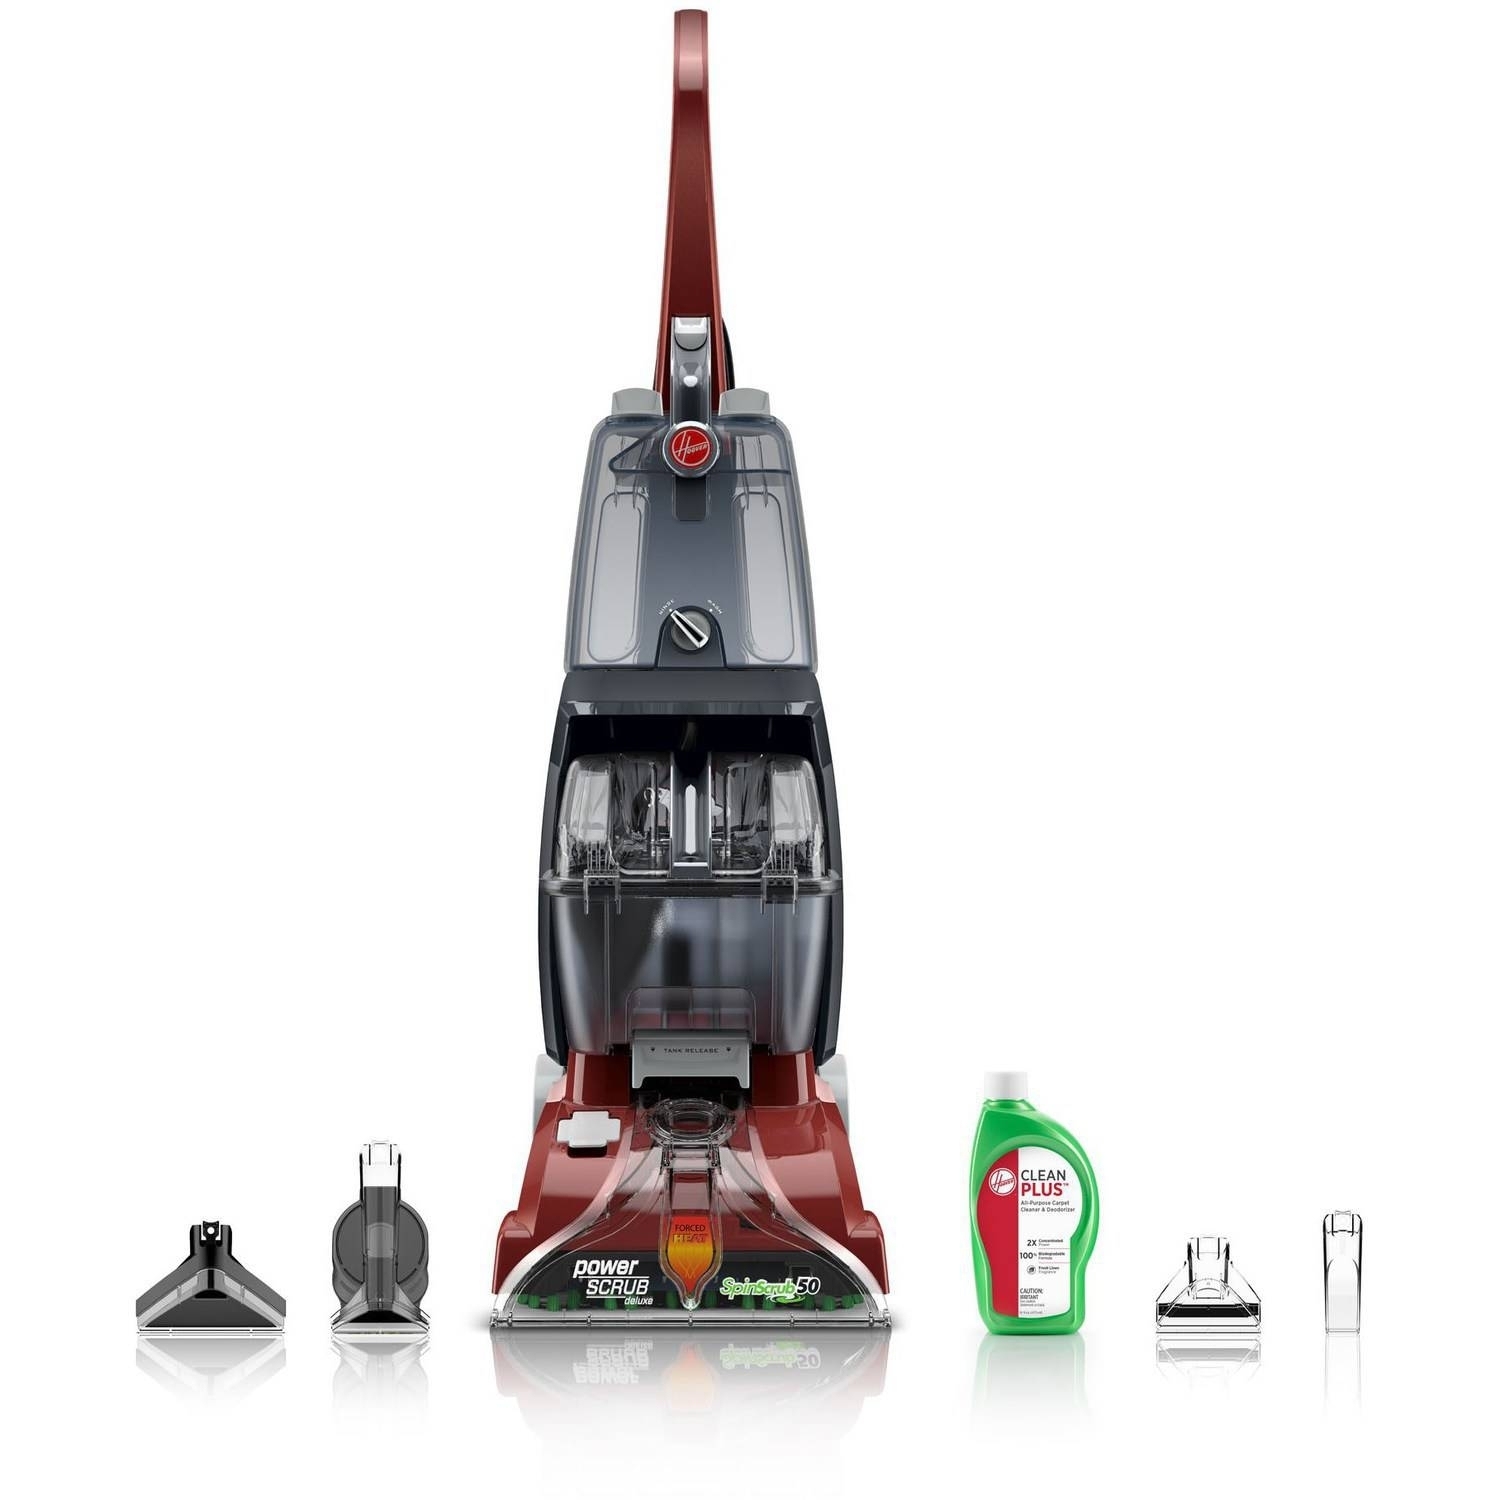 Hoover T-Series Windtunnel Rewind Bagless Upright Vacuum, Uh70120 intended for Hoover Windtunnel T Series Parts Diagram